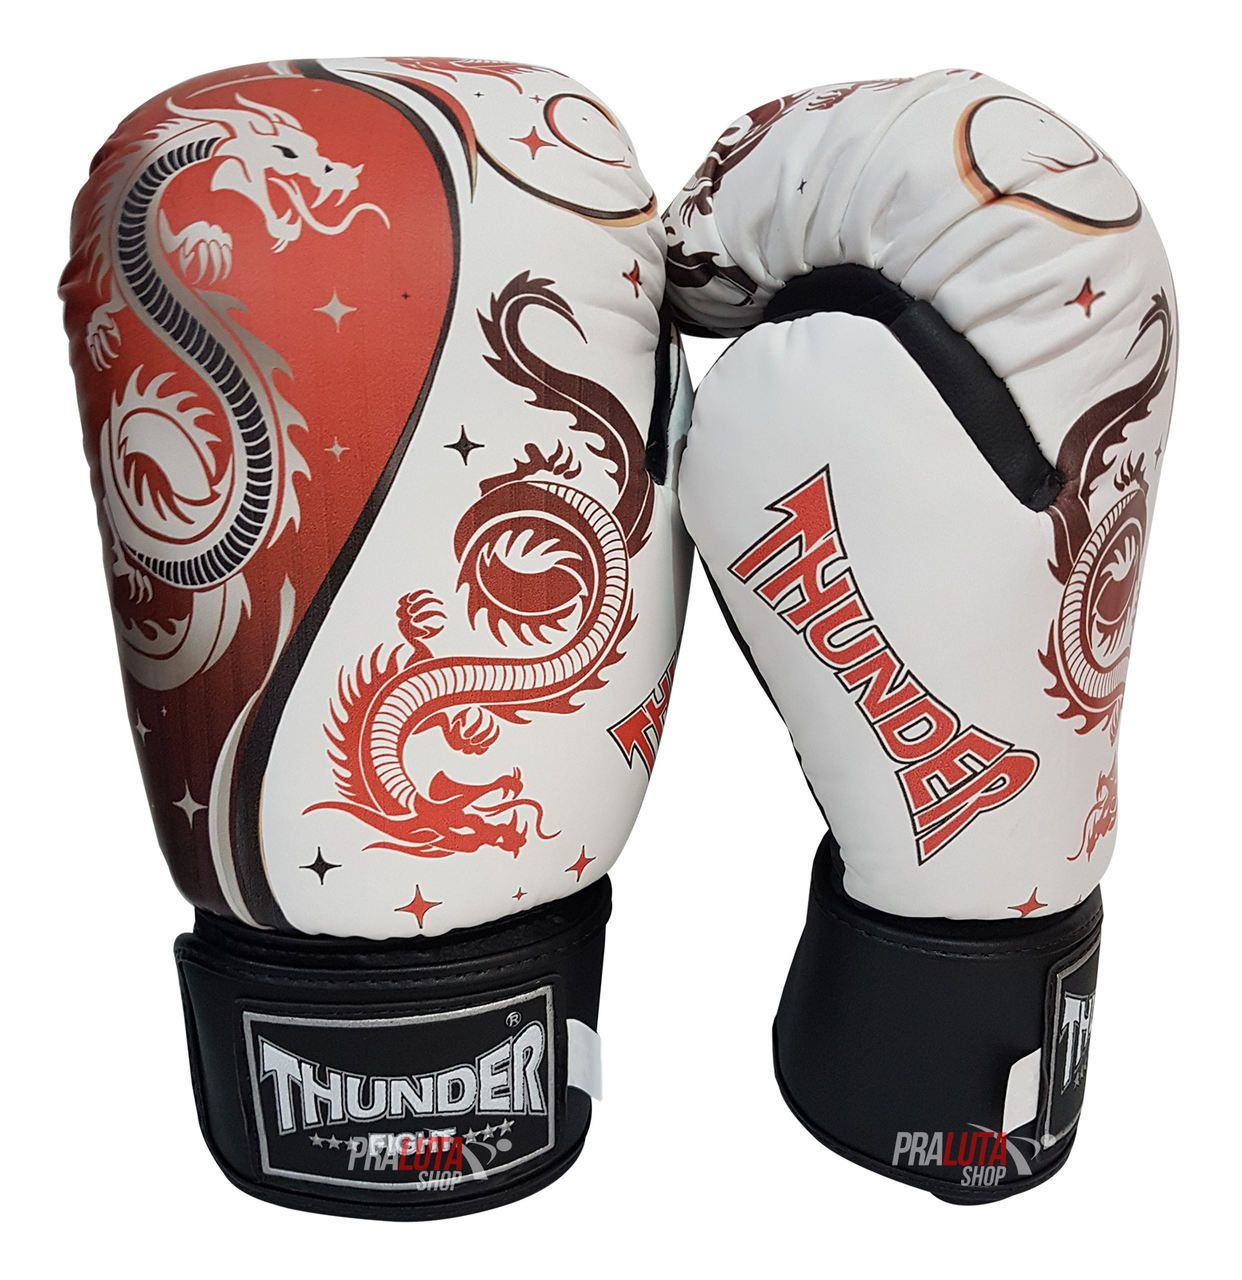 Super Kit de Muay Thai / Kickboxing 12oz - Caneleira G - Dragão Vermelho - Thunder Fight  - PRALUTA SHOP